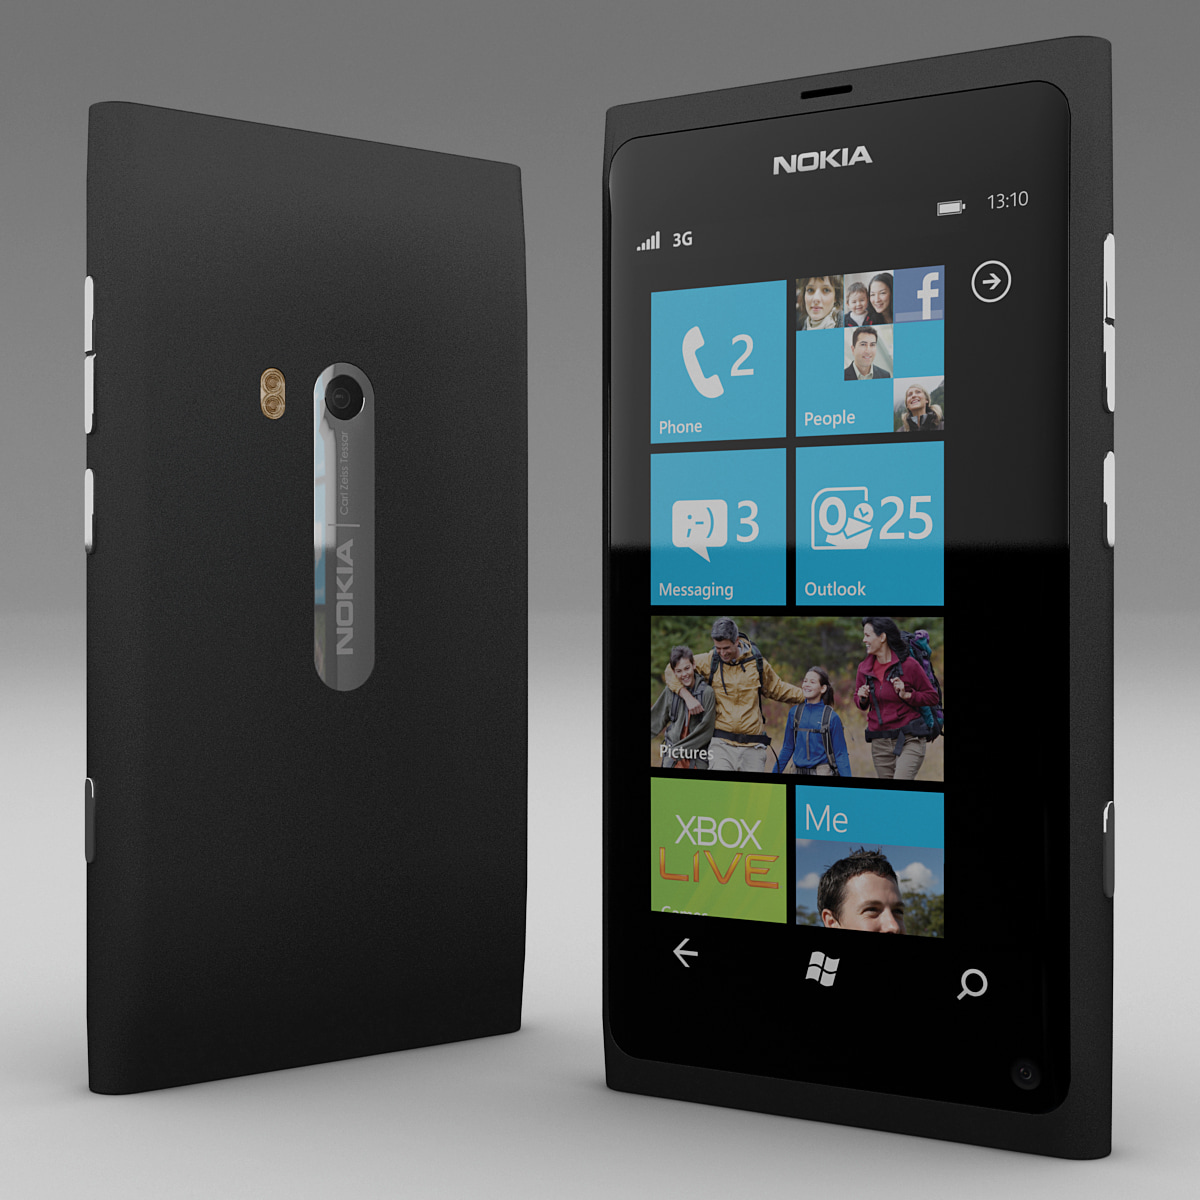 Nokia Lumia 800 Black_0001.jpg